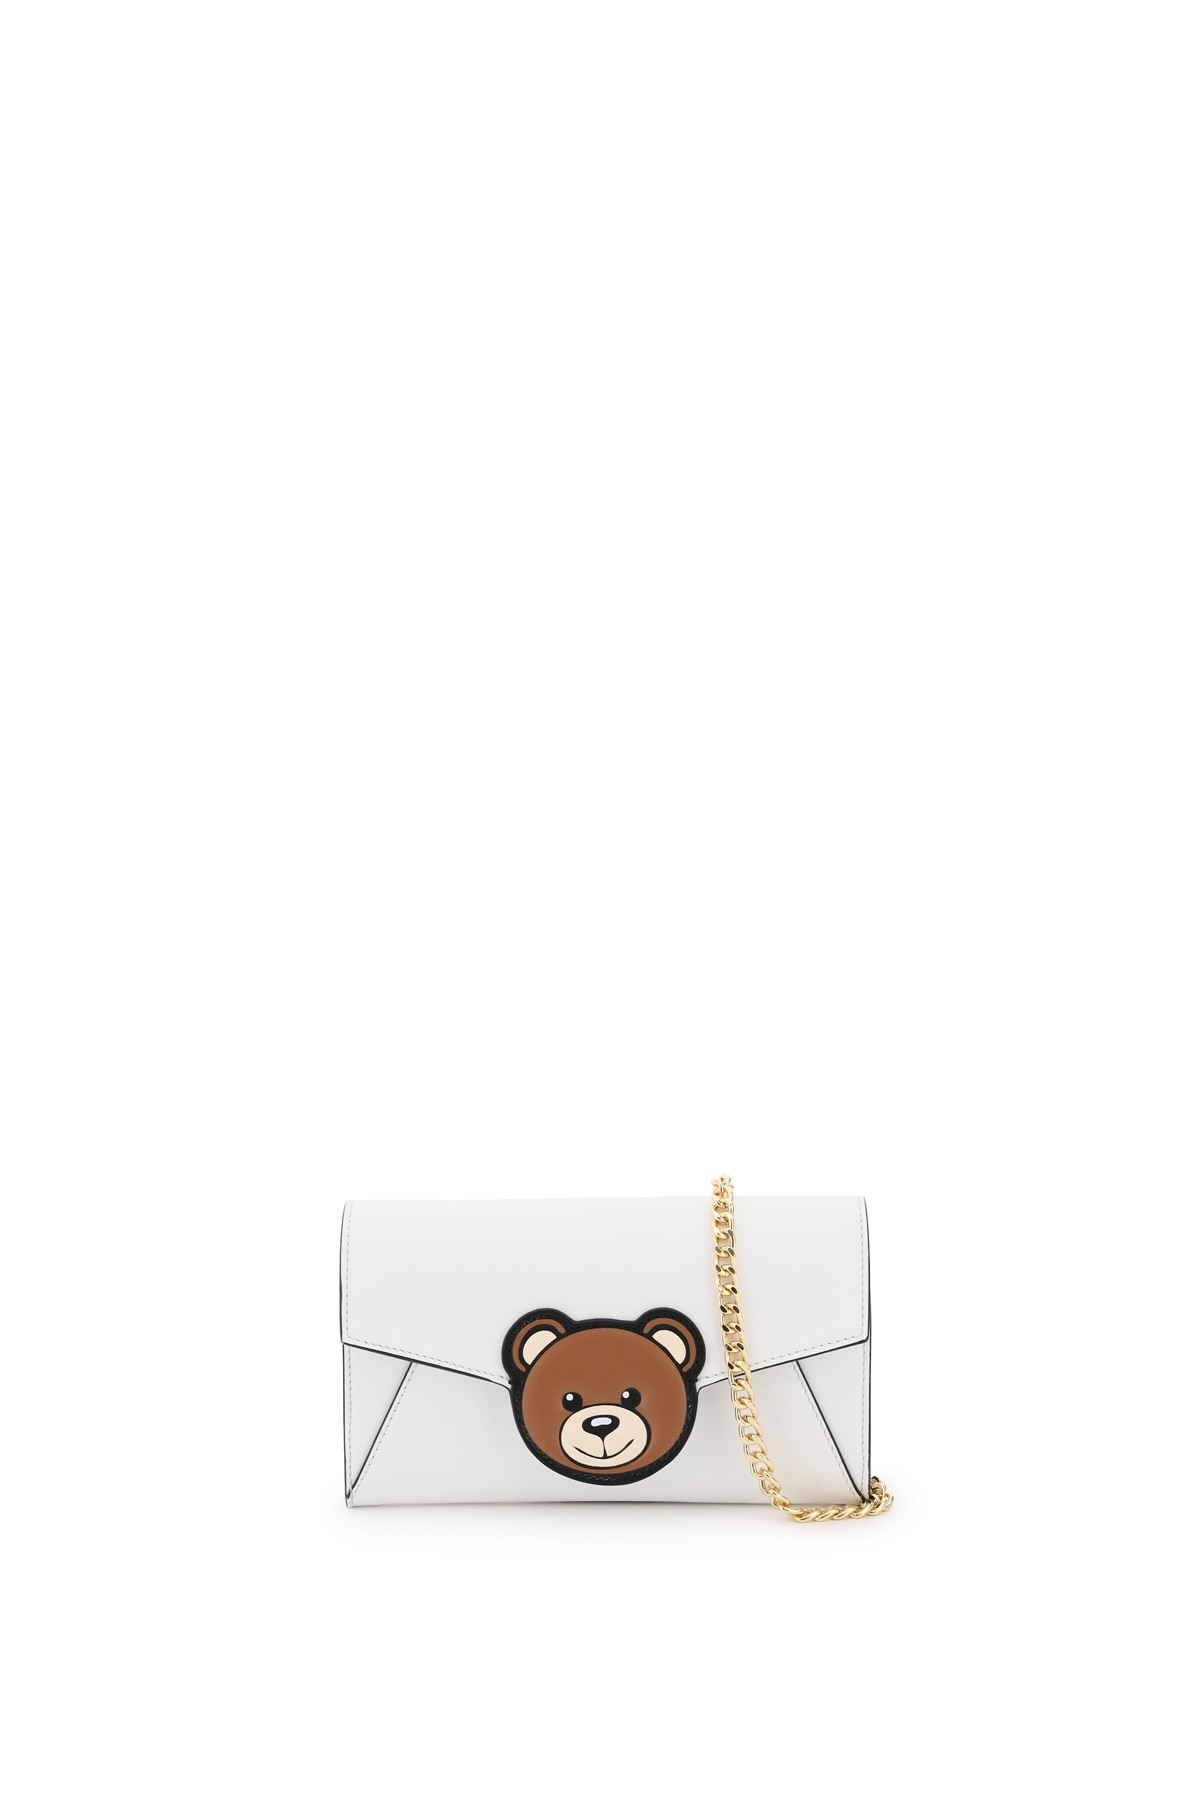 MOSCHINO MINI BAG CHAIN TEDDY BEAR PATCH OS White Leather